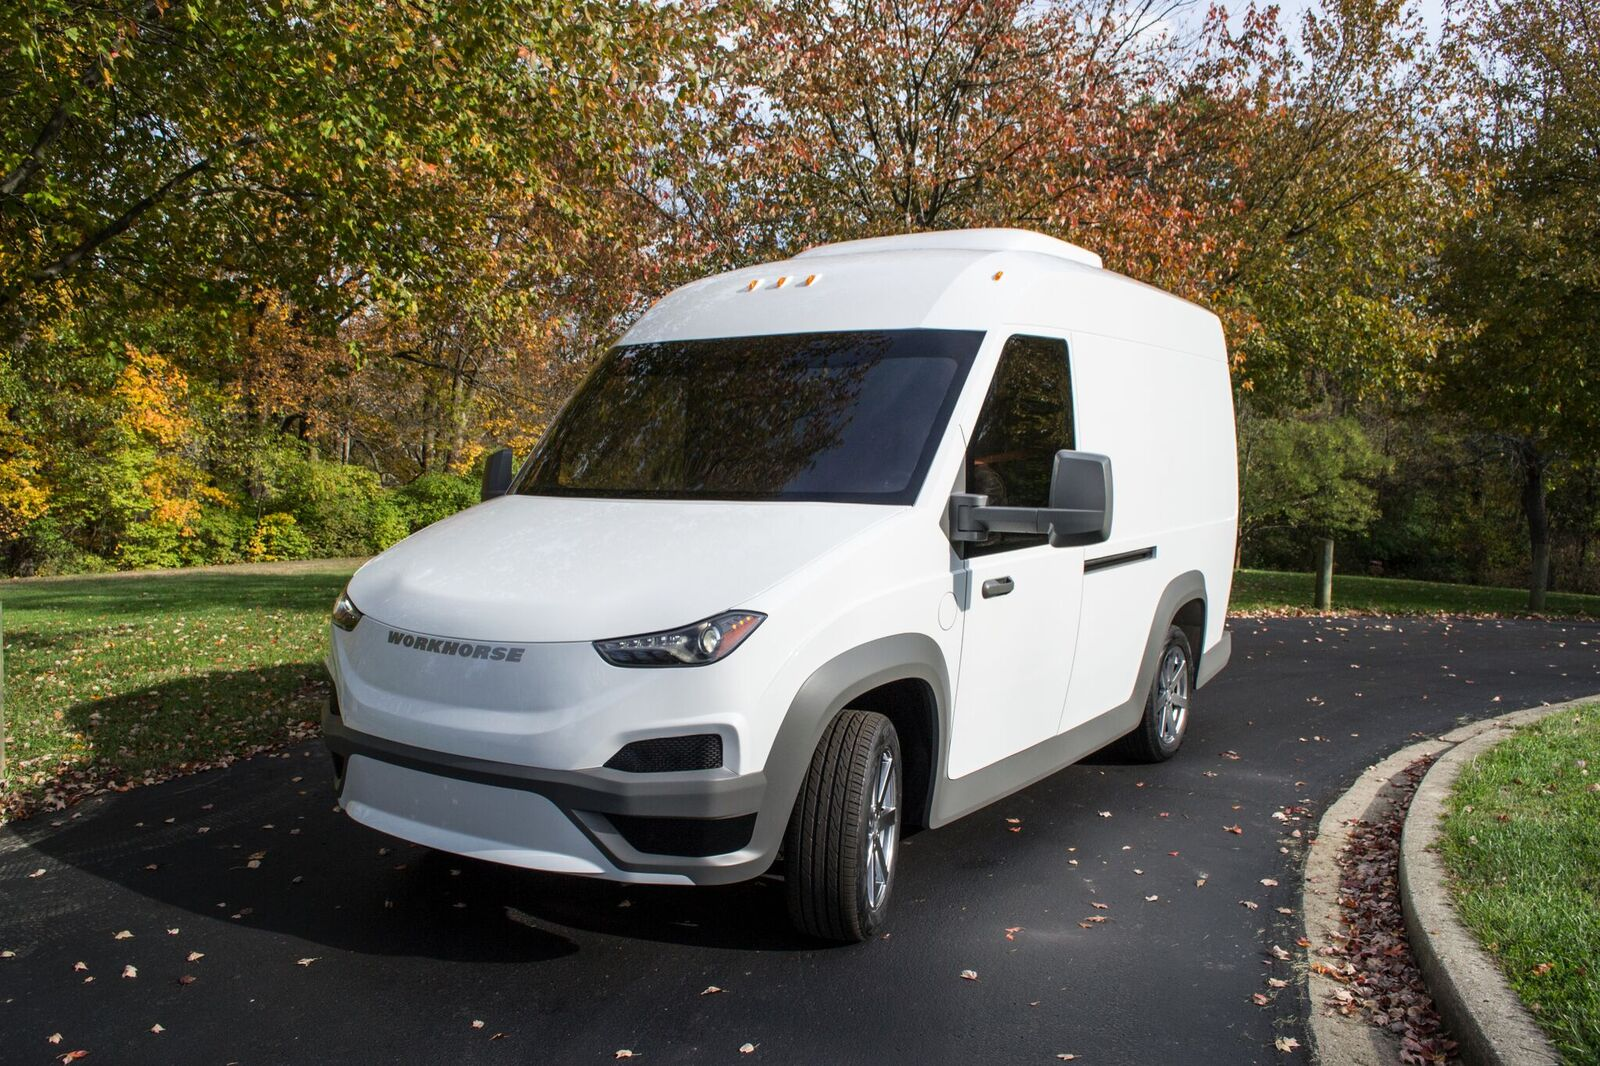 Workhorse NGEN electric delivery van